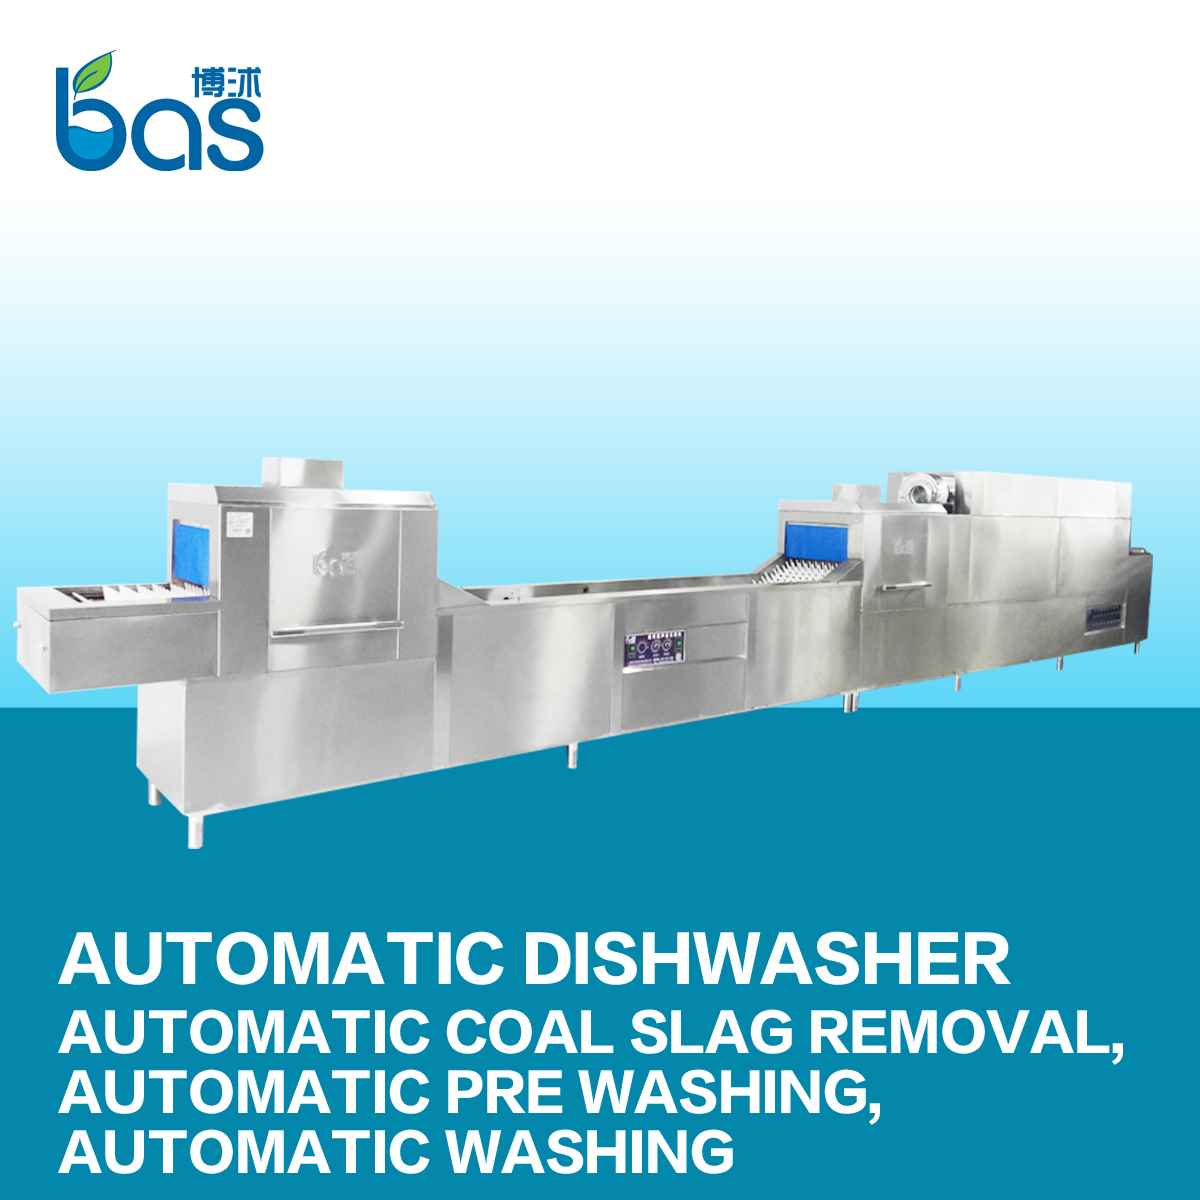 BSQ9800 fully automatic ultrasonic dishwasher